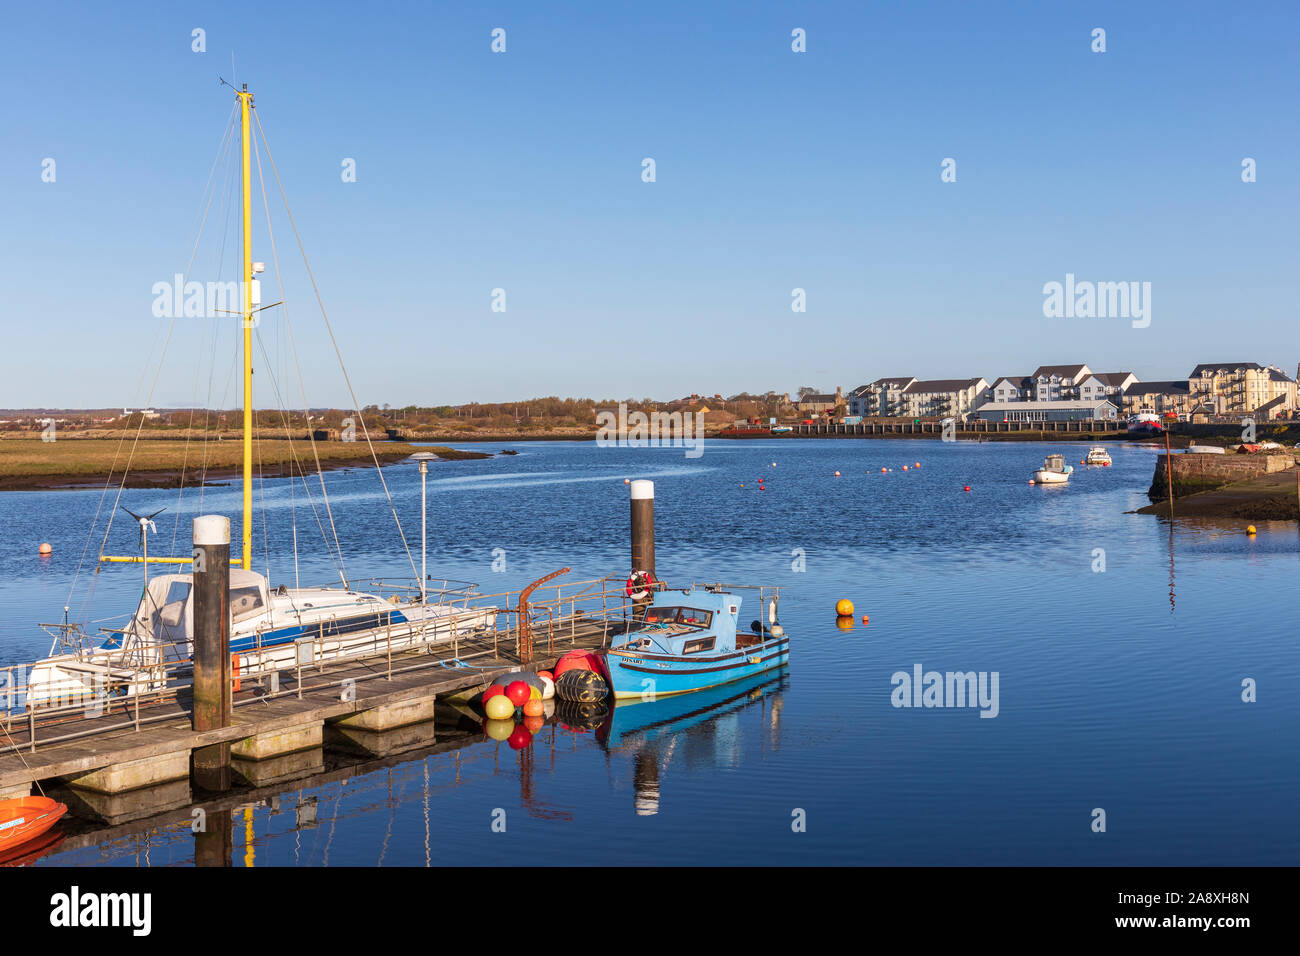 Irvine harbour, on the Firth of Clyde and River Irvine Ayrshire, Scotland, UK Stock Photo